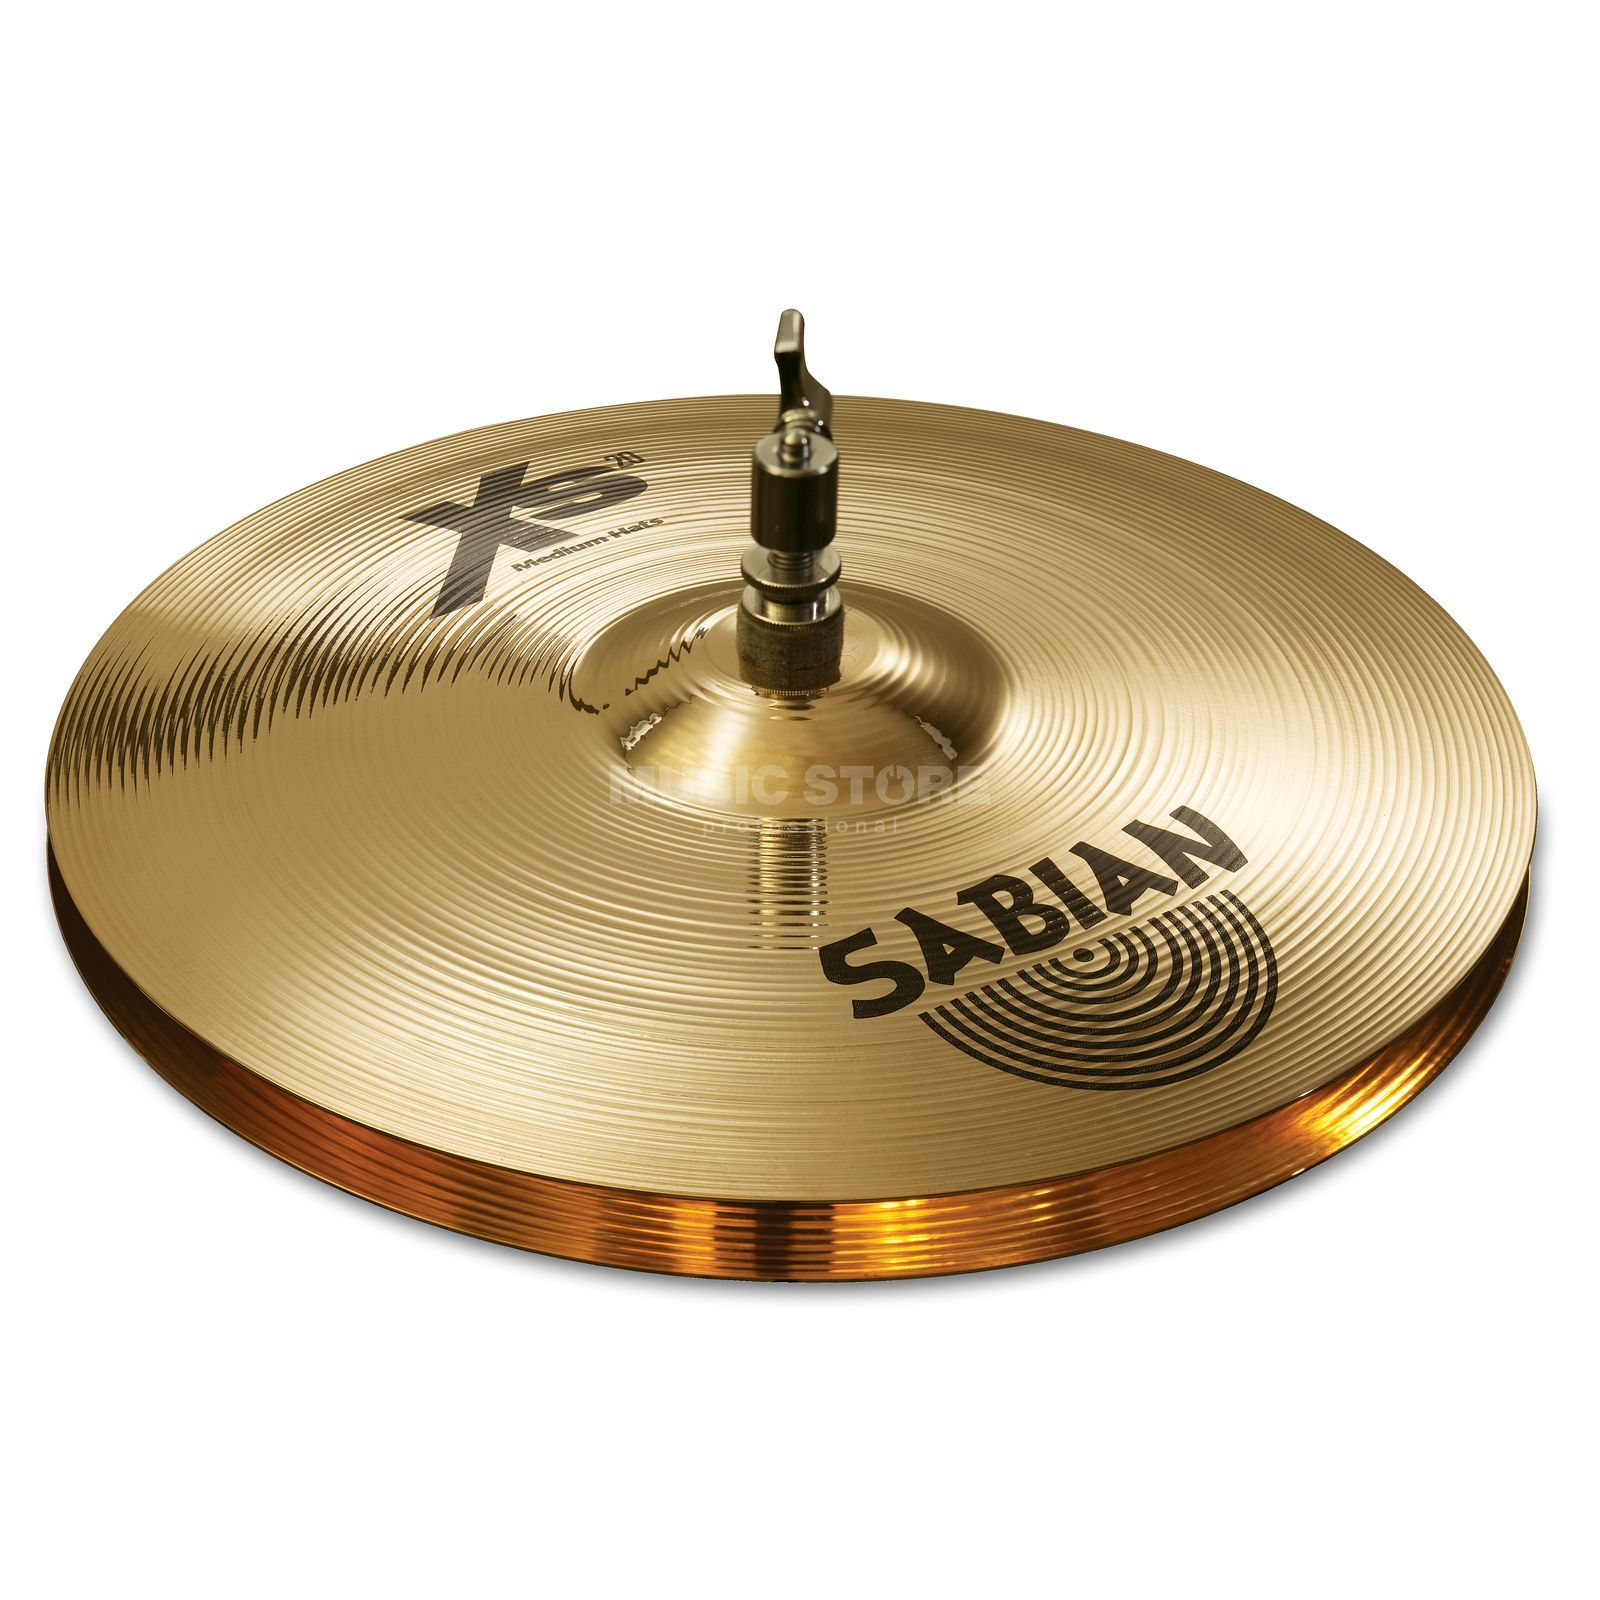 "Sabian XS20 Medium HiHat 14"", Brilliant Finish Produktbillede"